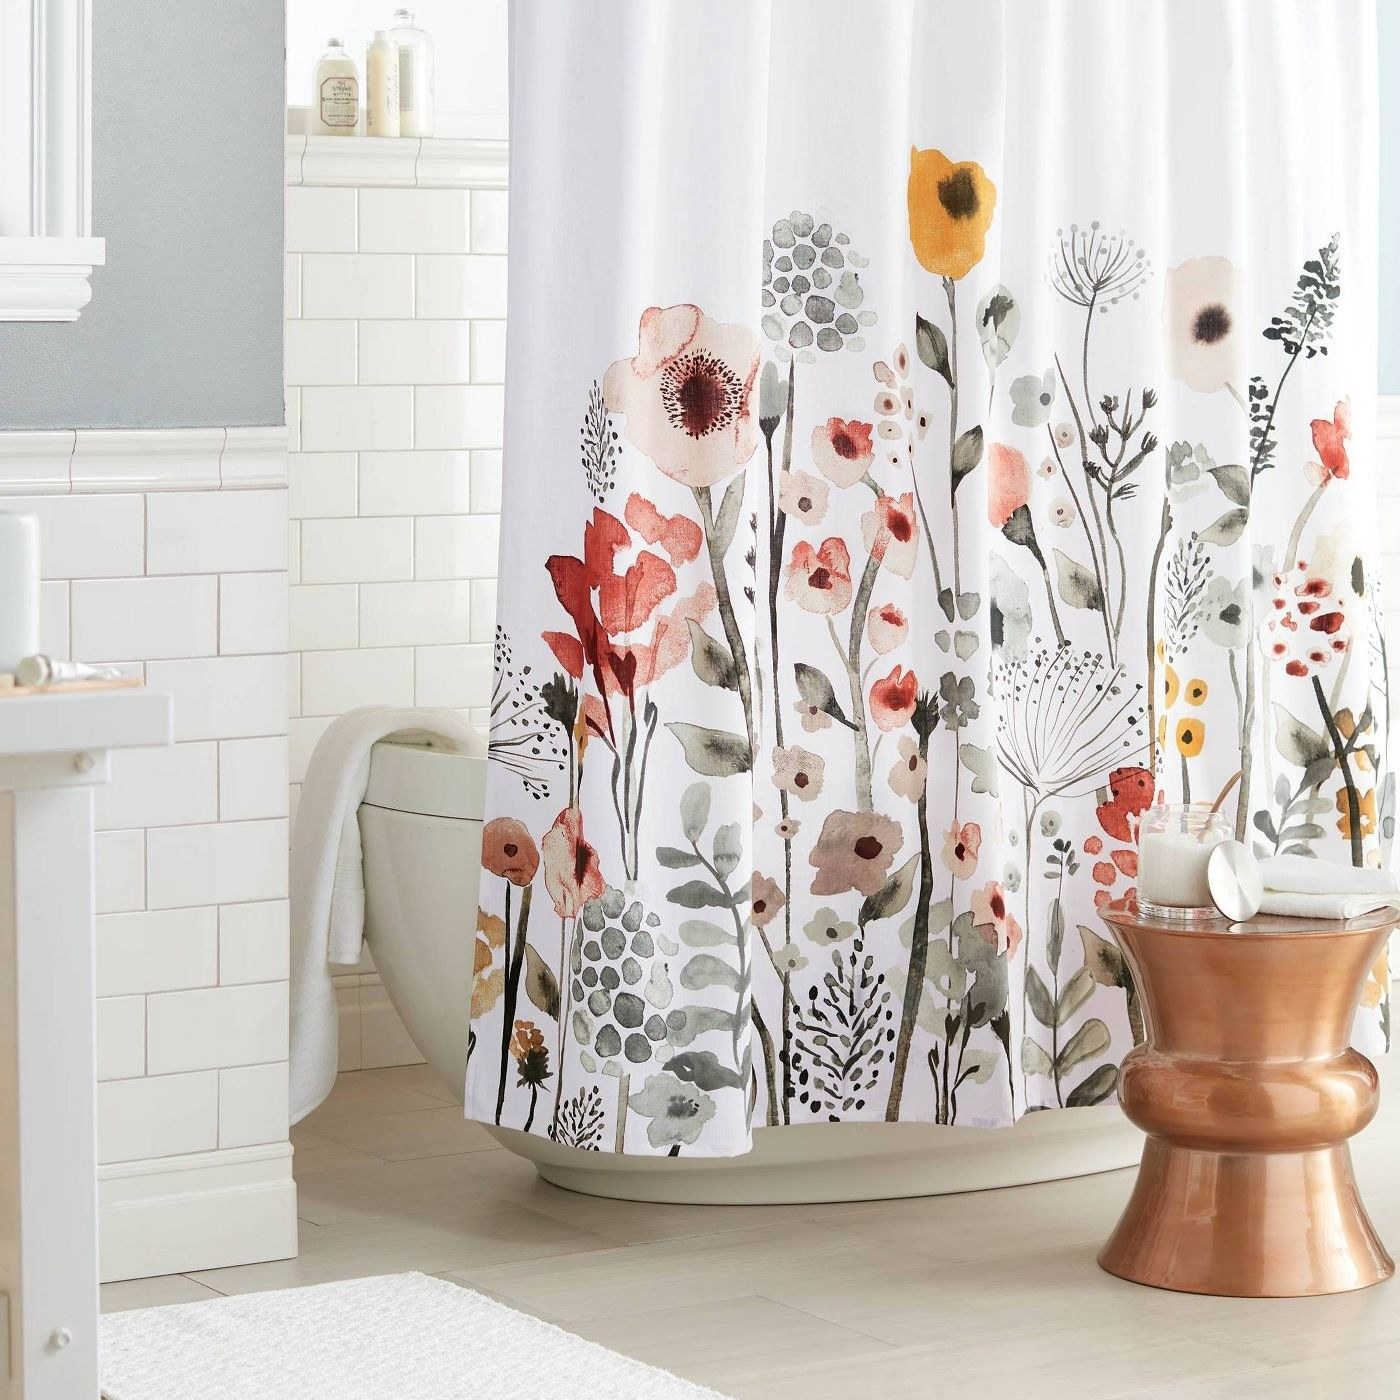 a white shower curtain with a floral pattern